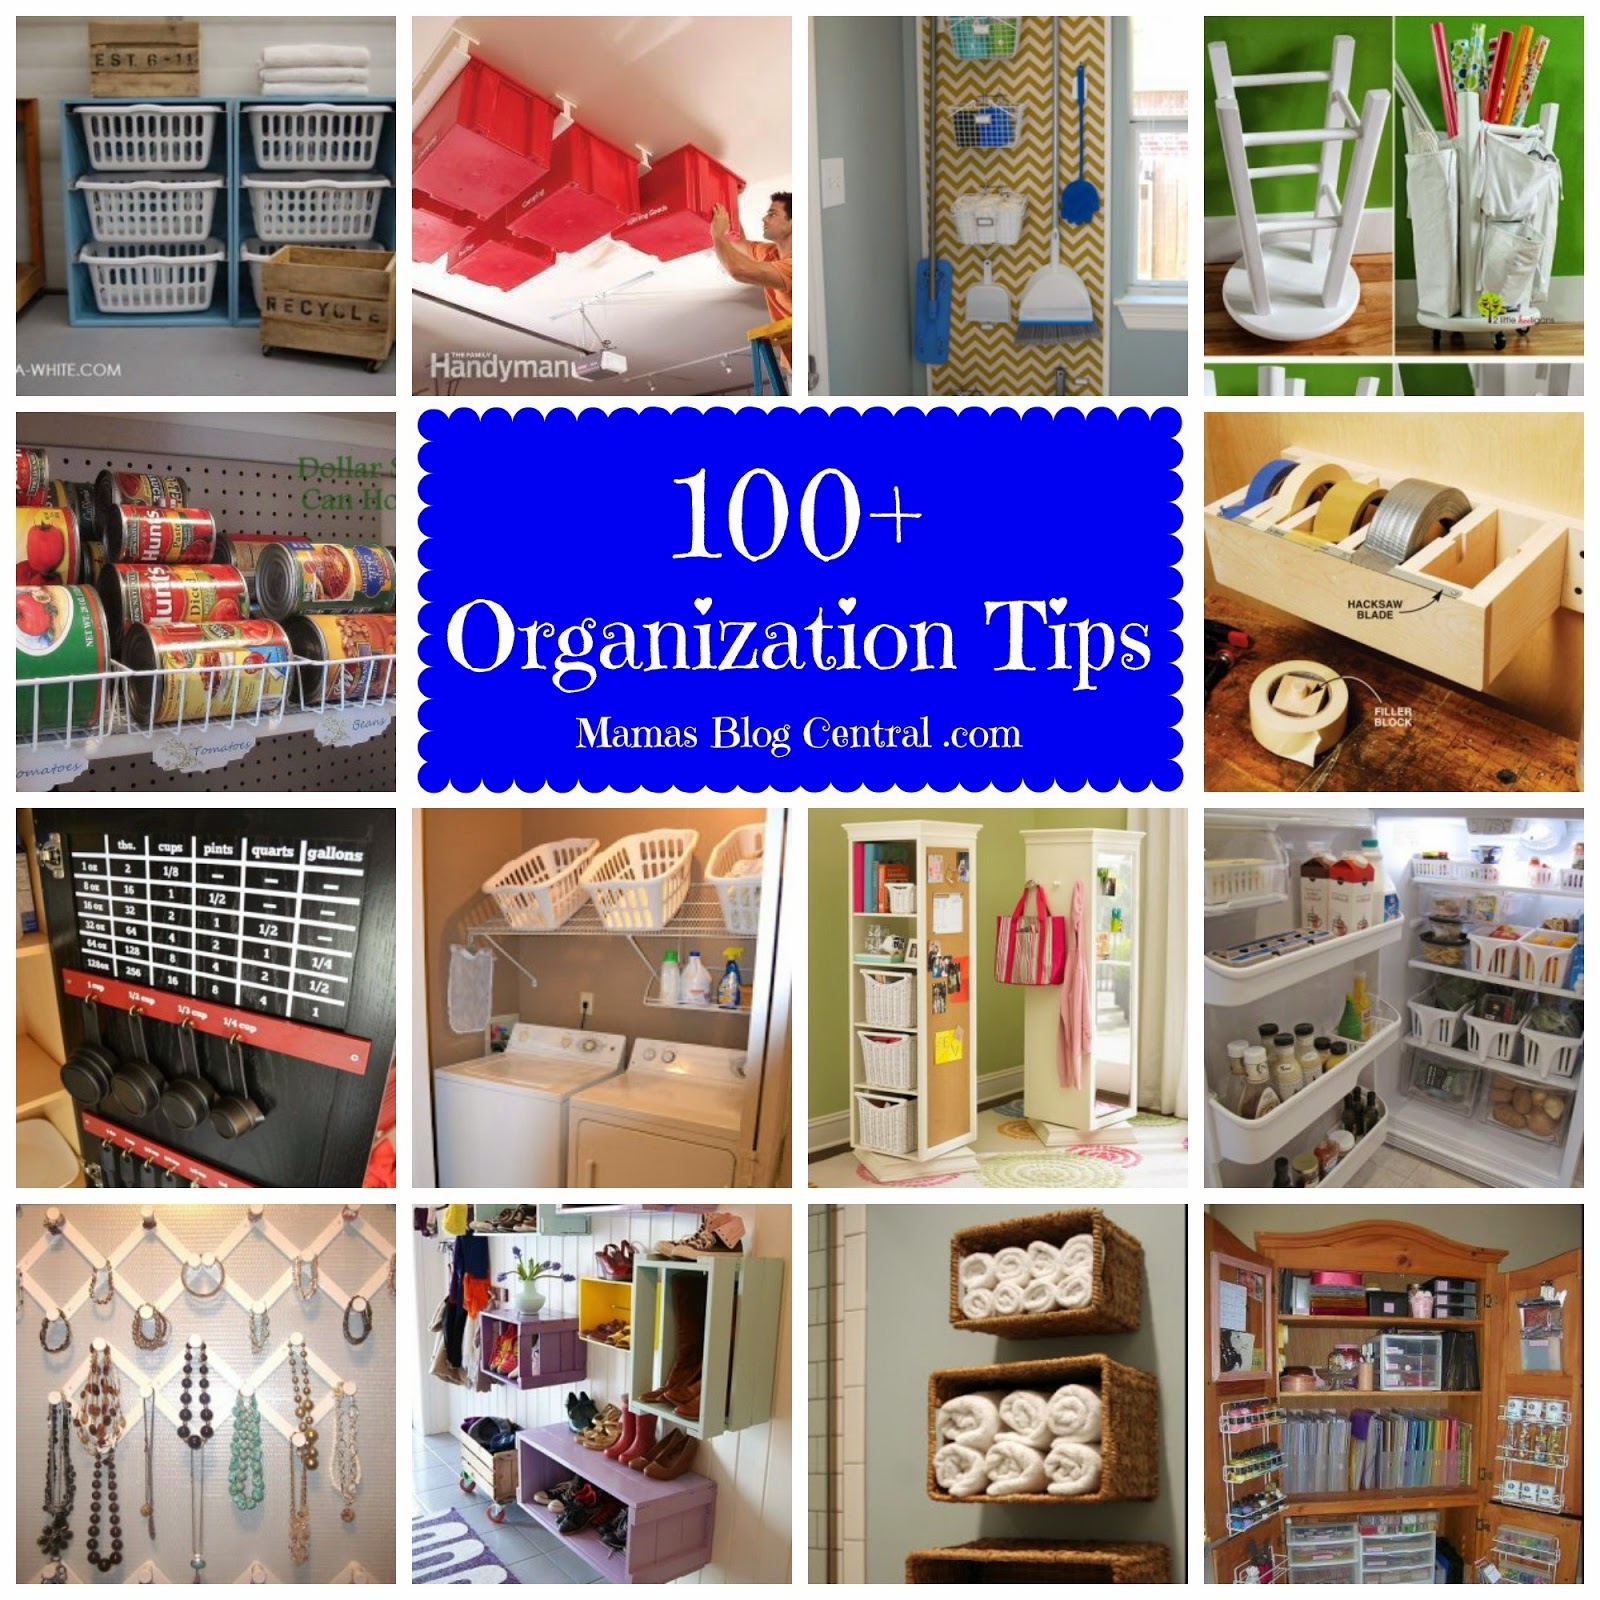 100+ Organization Tips, shared by Mama's Blog Central